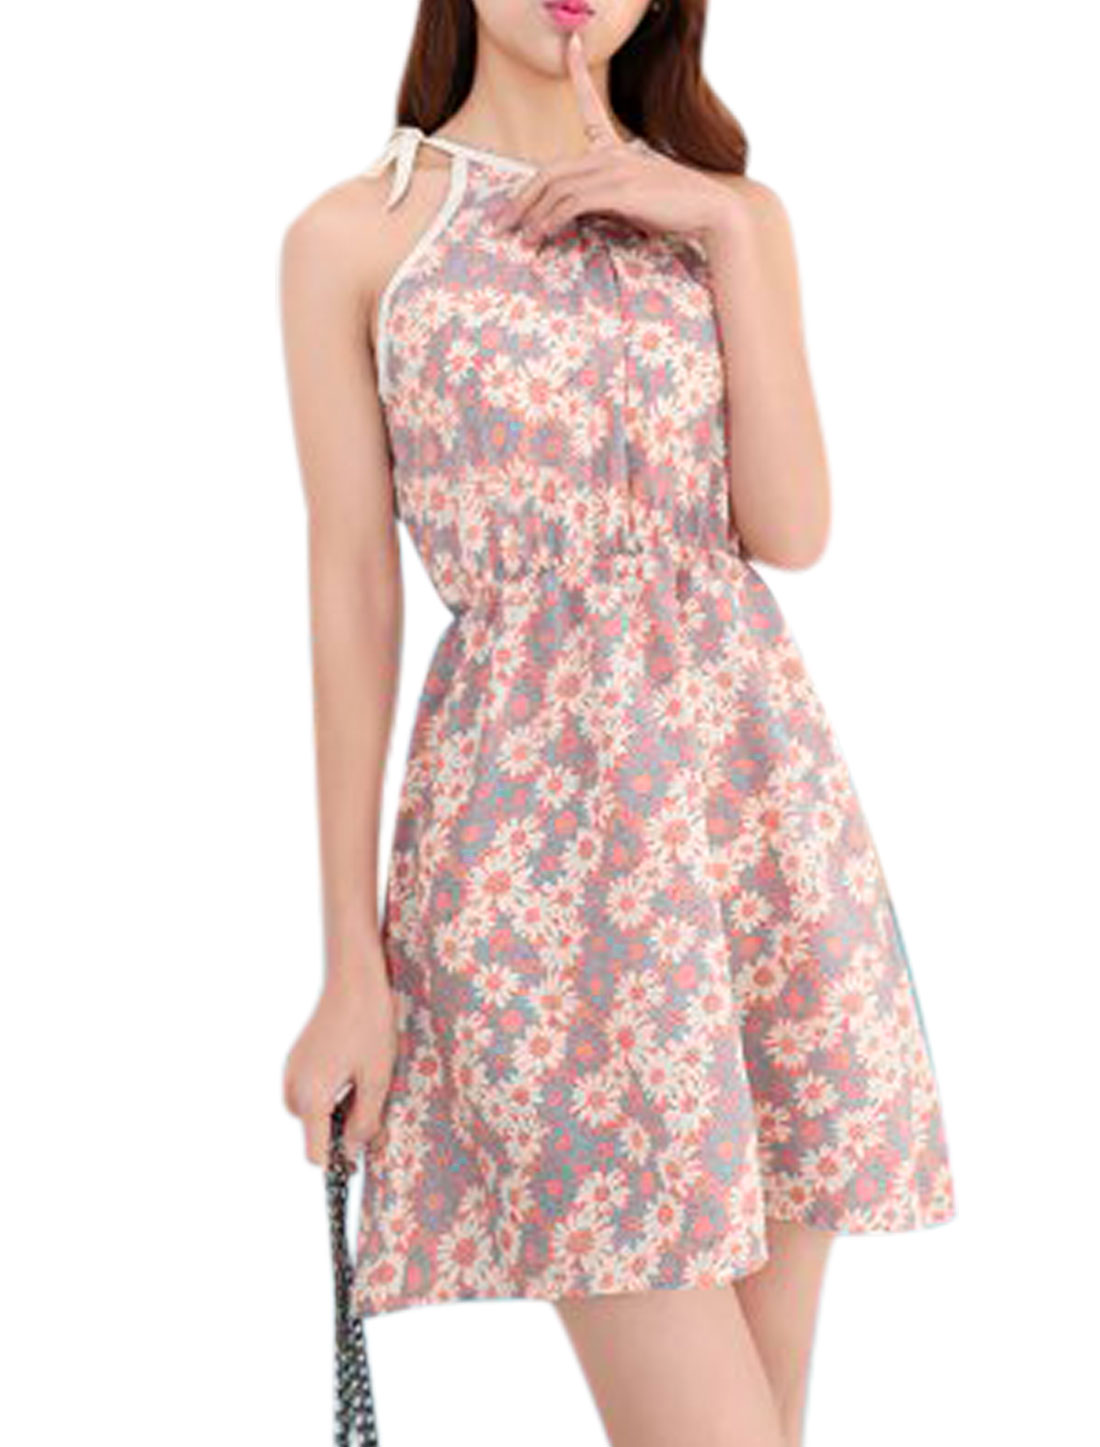 Lady Halter Neck Sleeveless Flower Prints Leisure Sundress Salmon XS